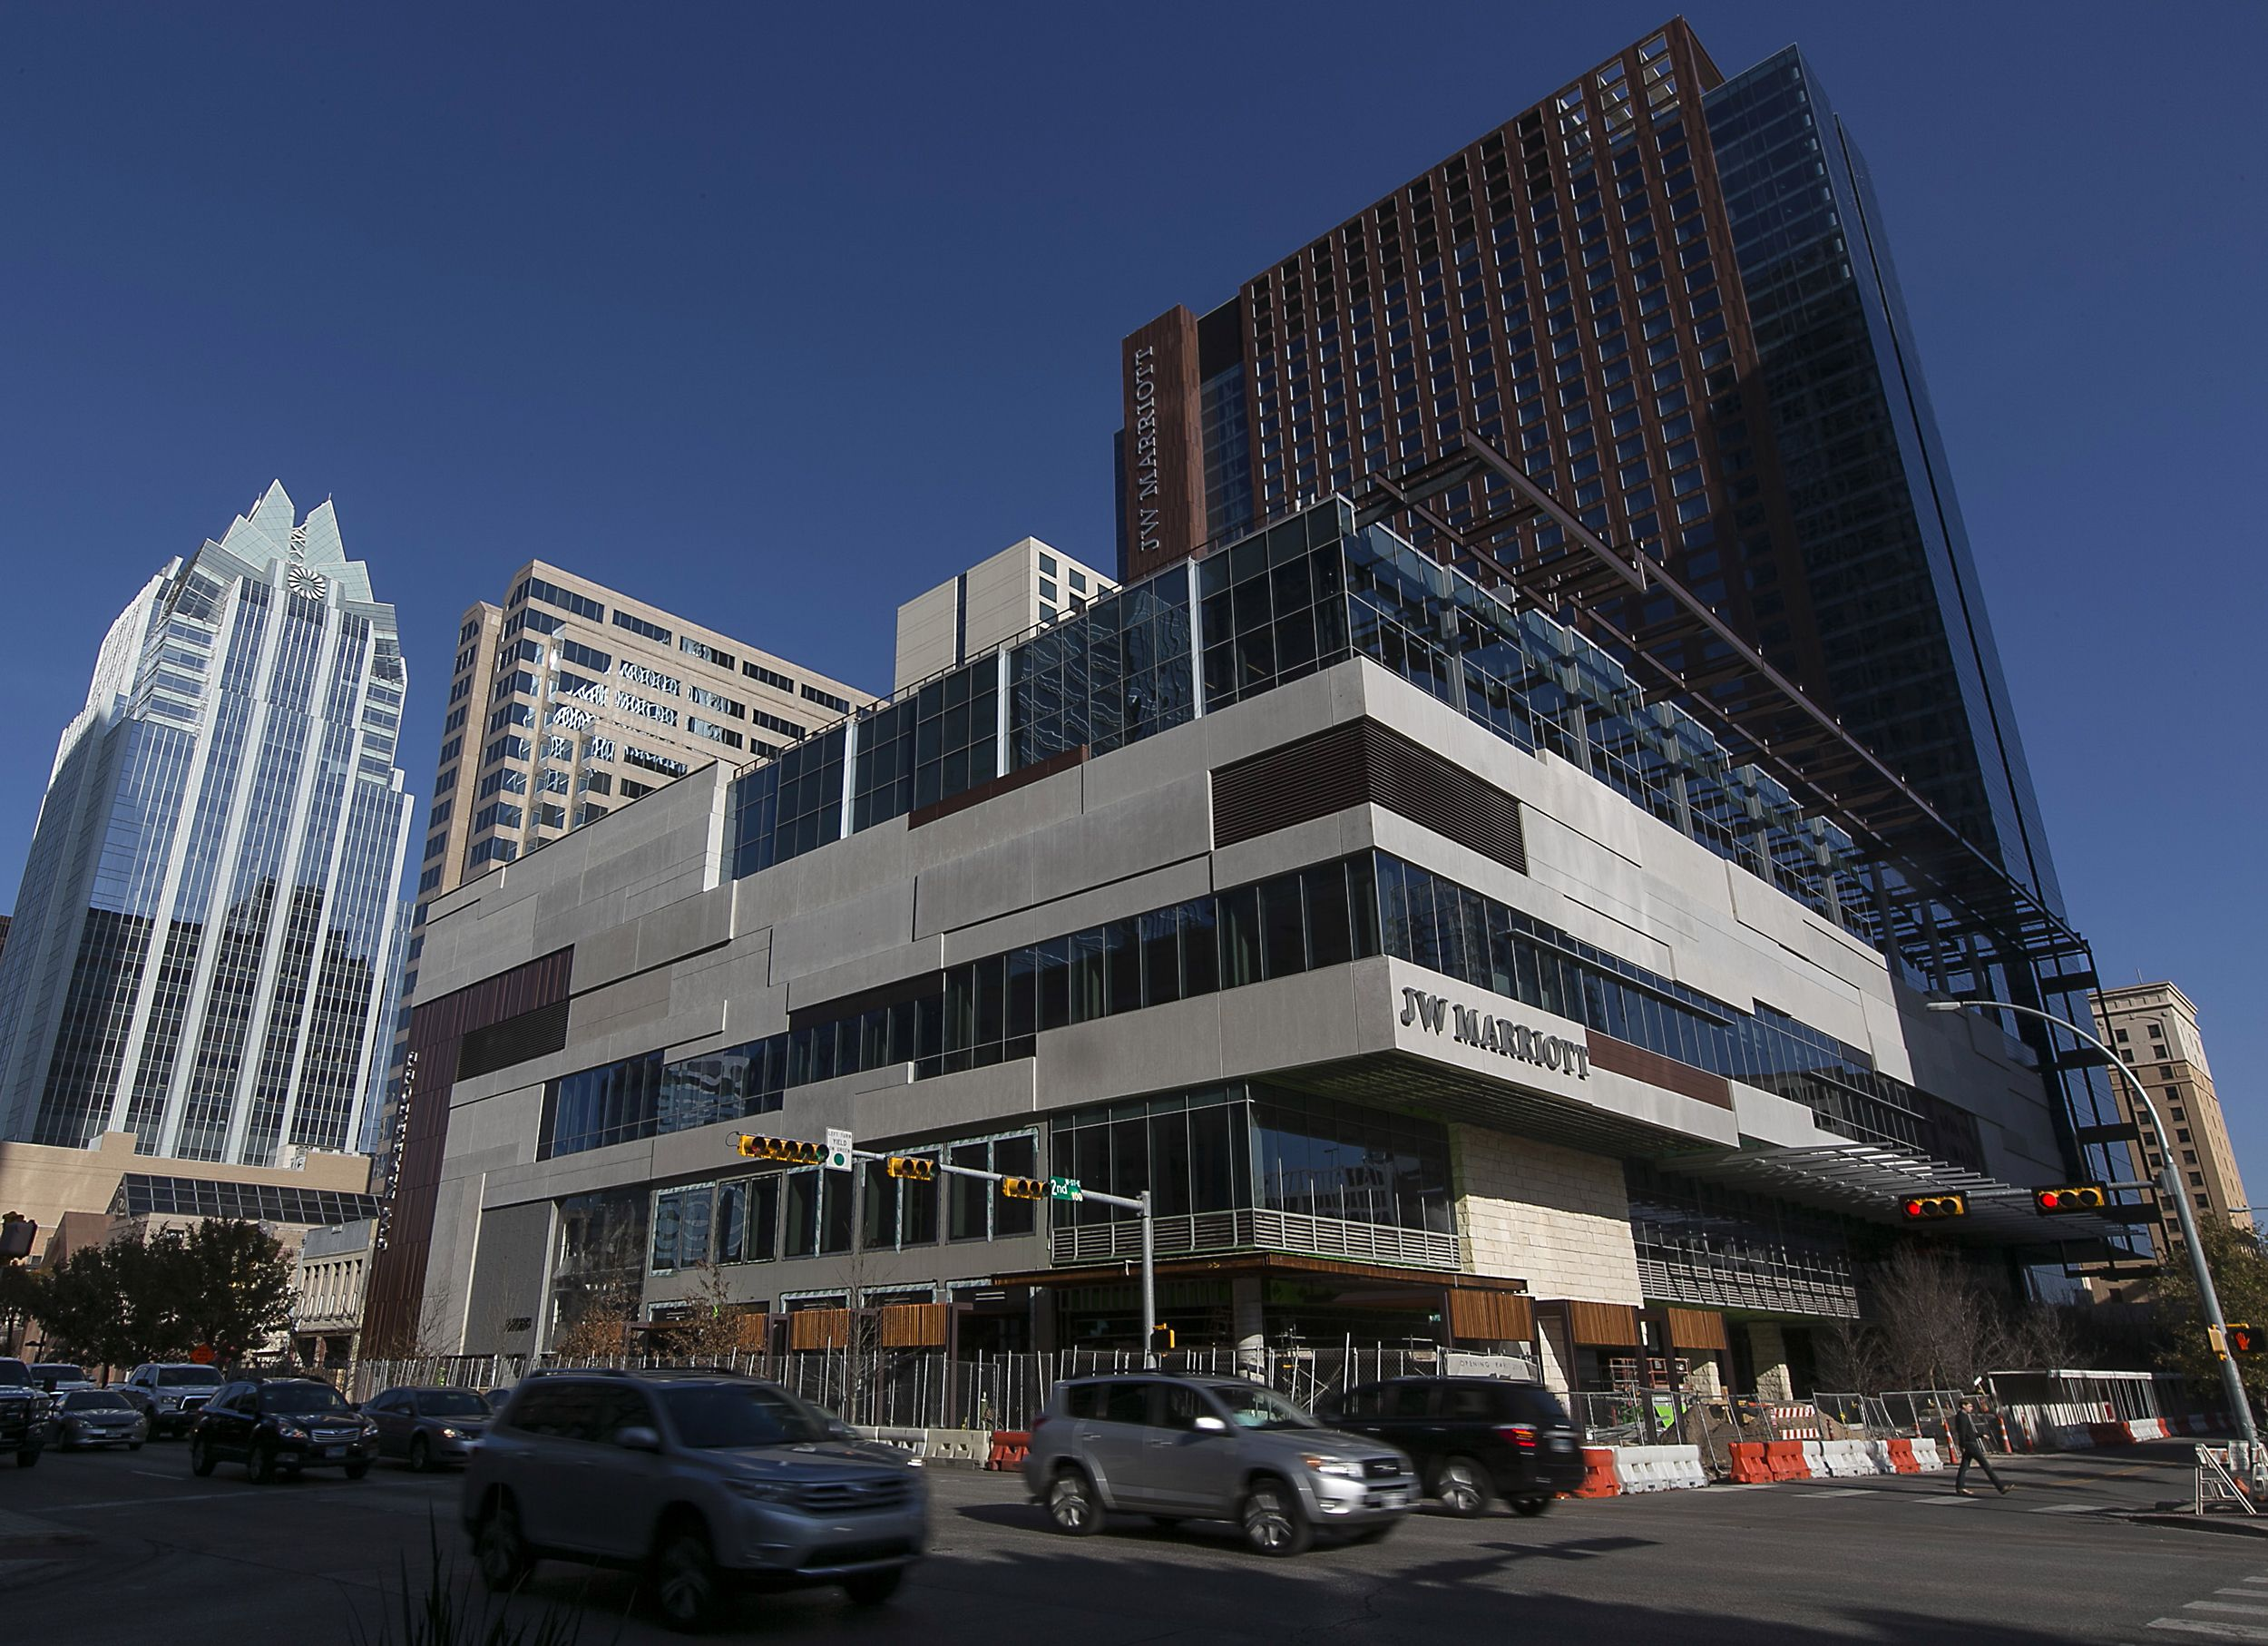 The Jw Marriott Downtown Will Be Largest Hotel In Austin Credit Rodolfo